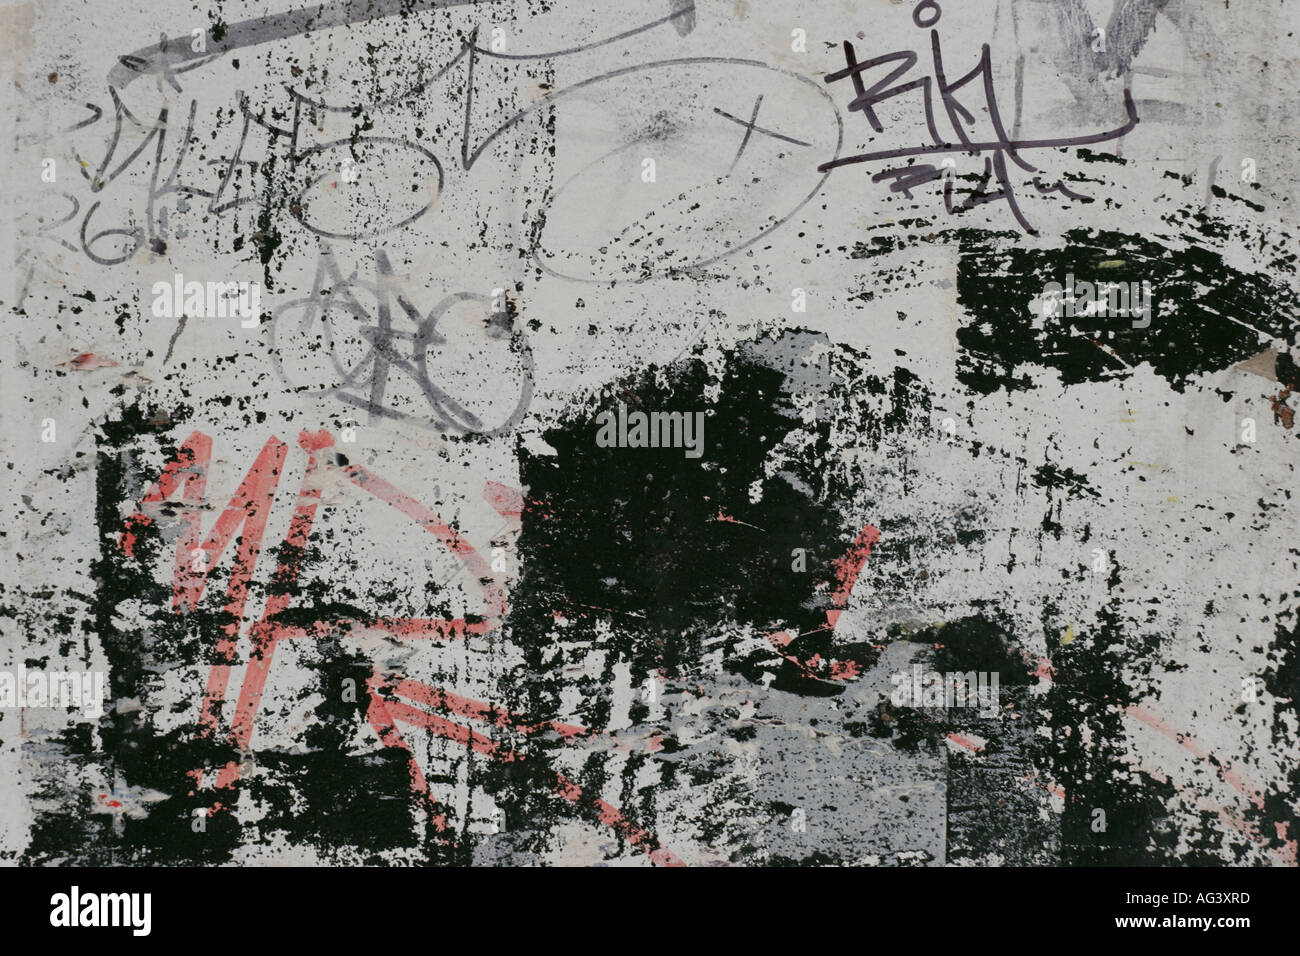 Graffiti wall writing - Graffiti And Abstract Accidental Paint On A Grey Wall With Red And Black Writing And Splodges